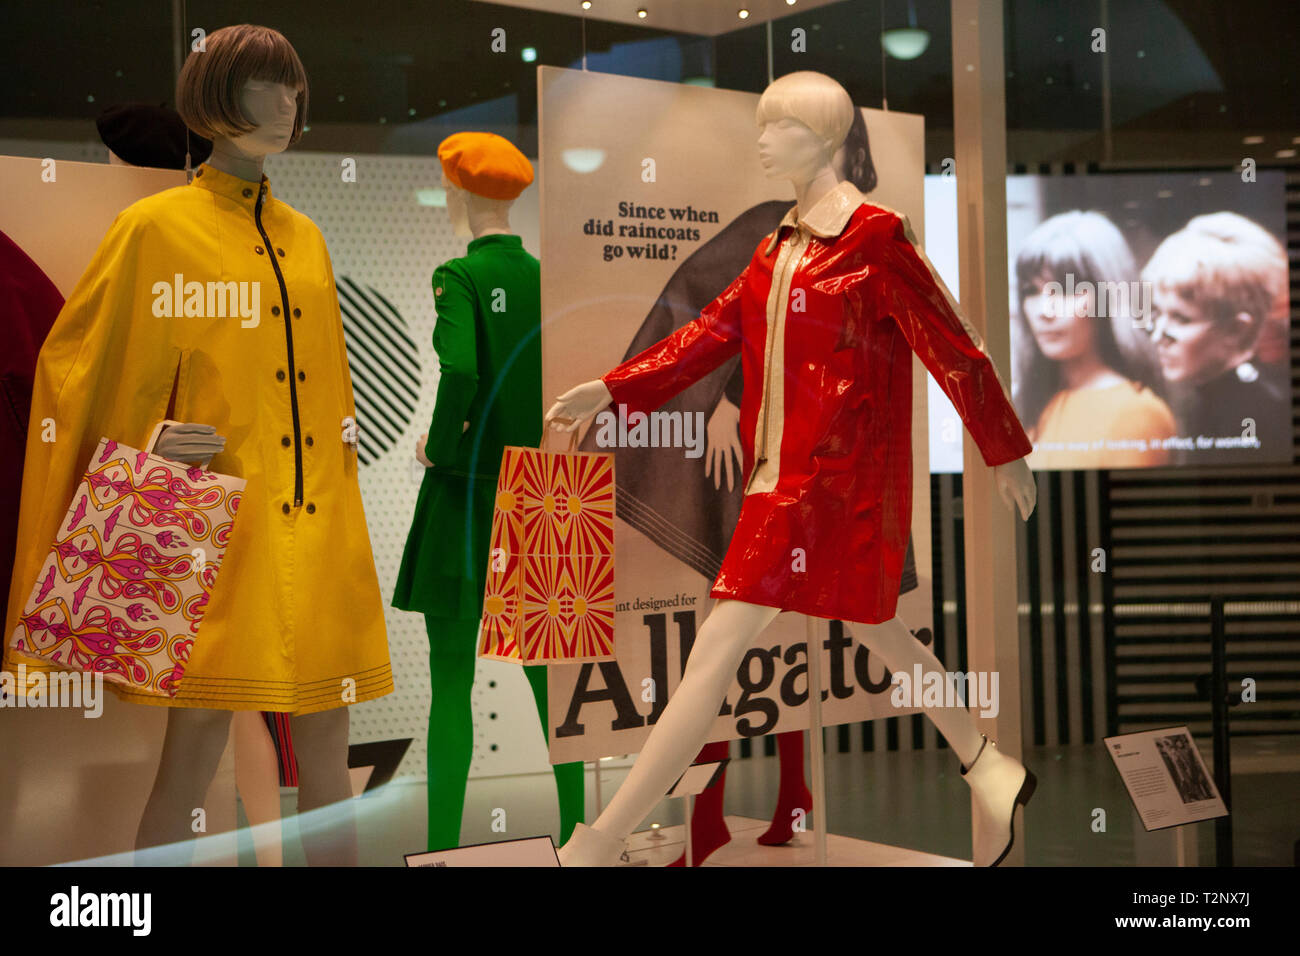 The exhibition 'Mary Quant' opens at the Victoria and Albert Museum, London, showcasing her designs from the 1960s and 1970s, most famously her minidr - Stock Image